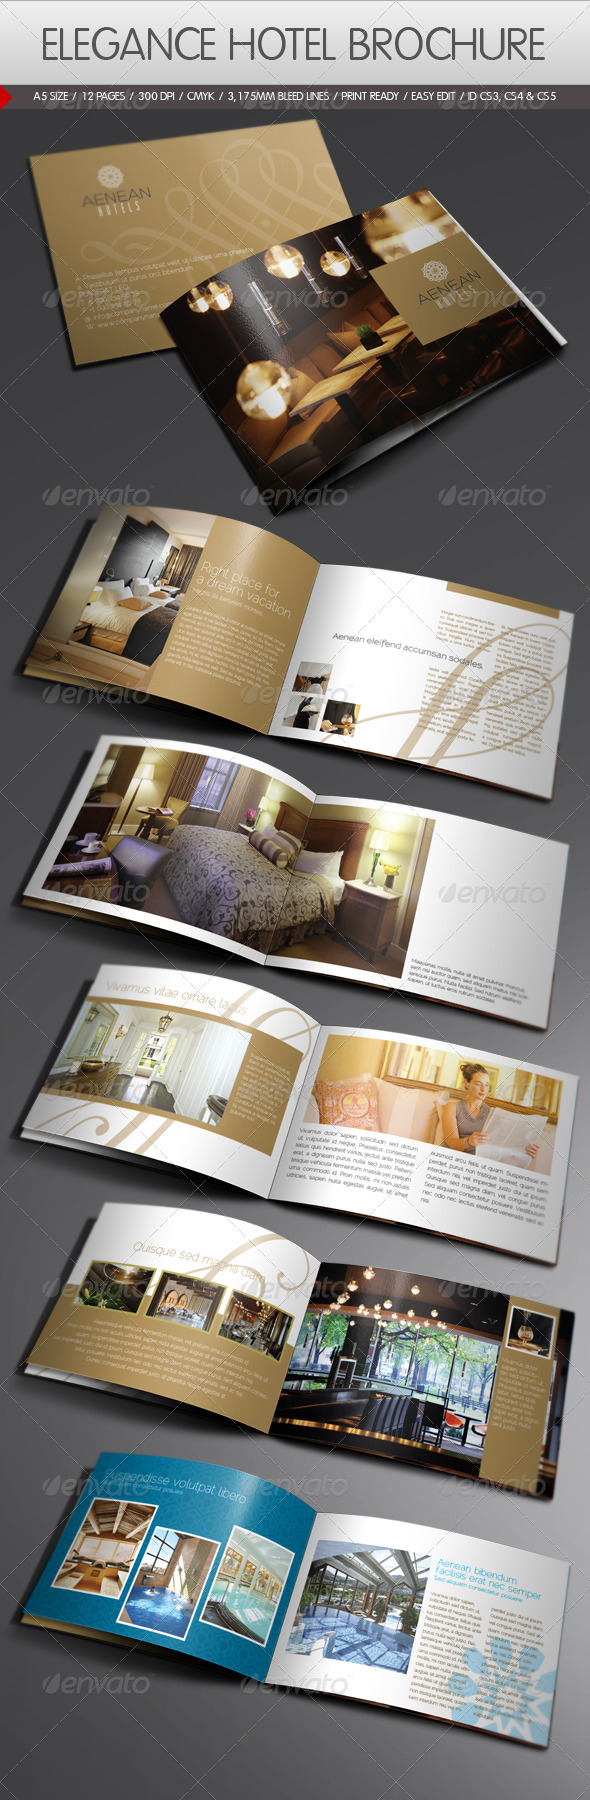 Elegance hotel brochure by yderindere graphicriver for Hotel brochure design templates